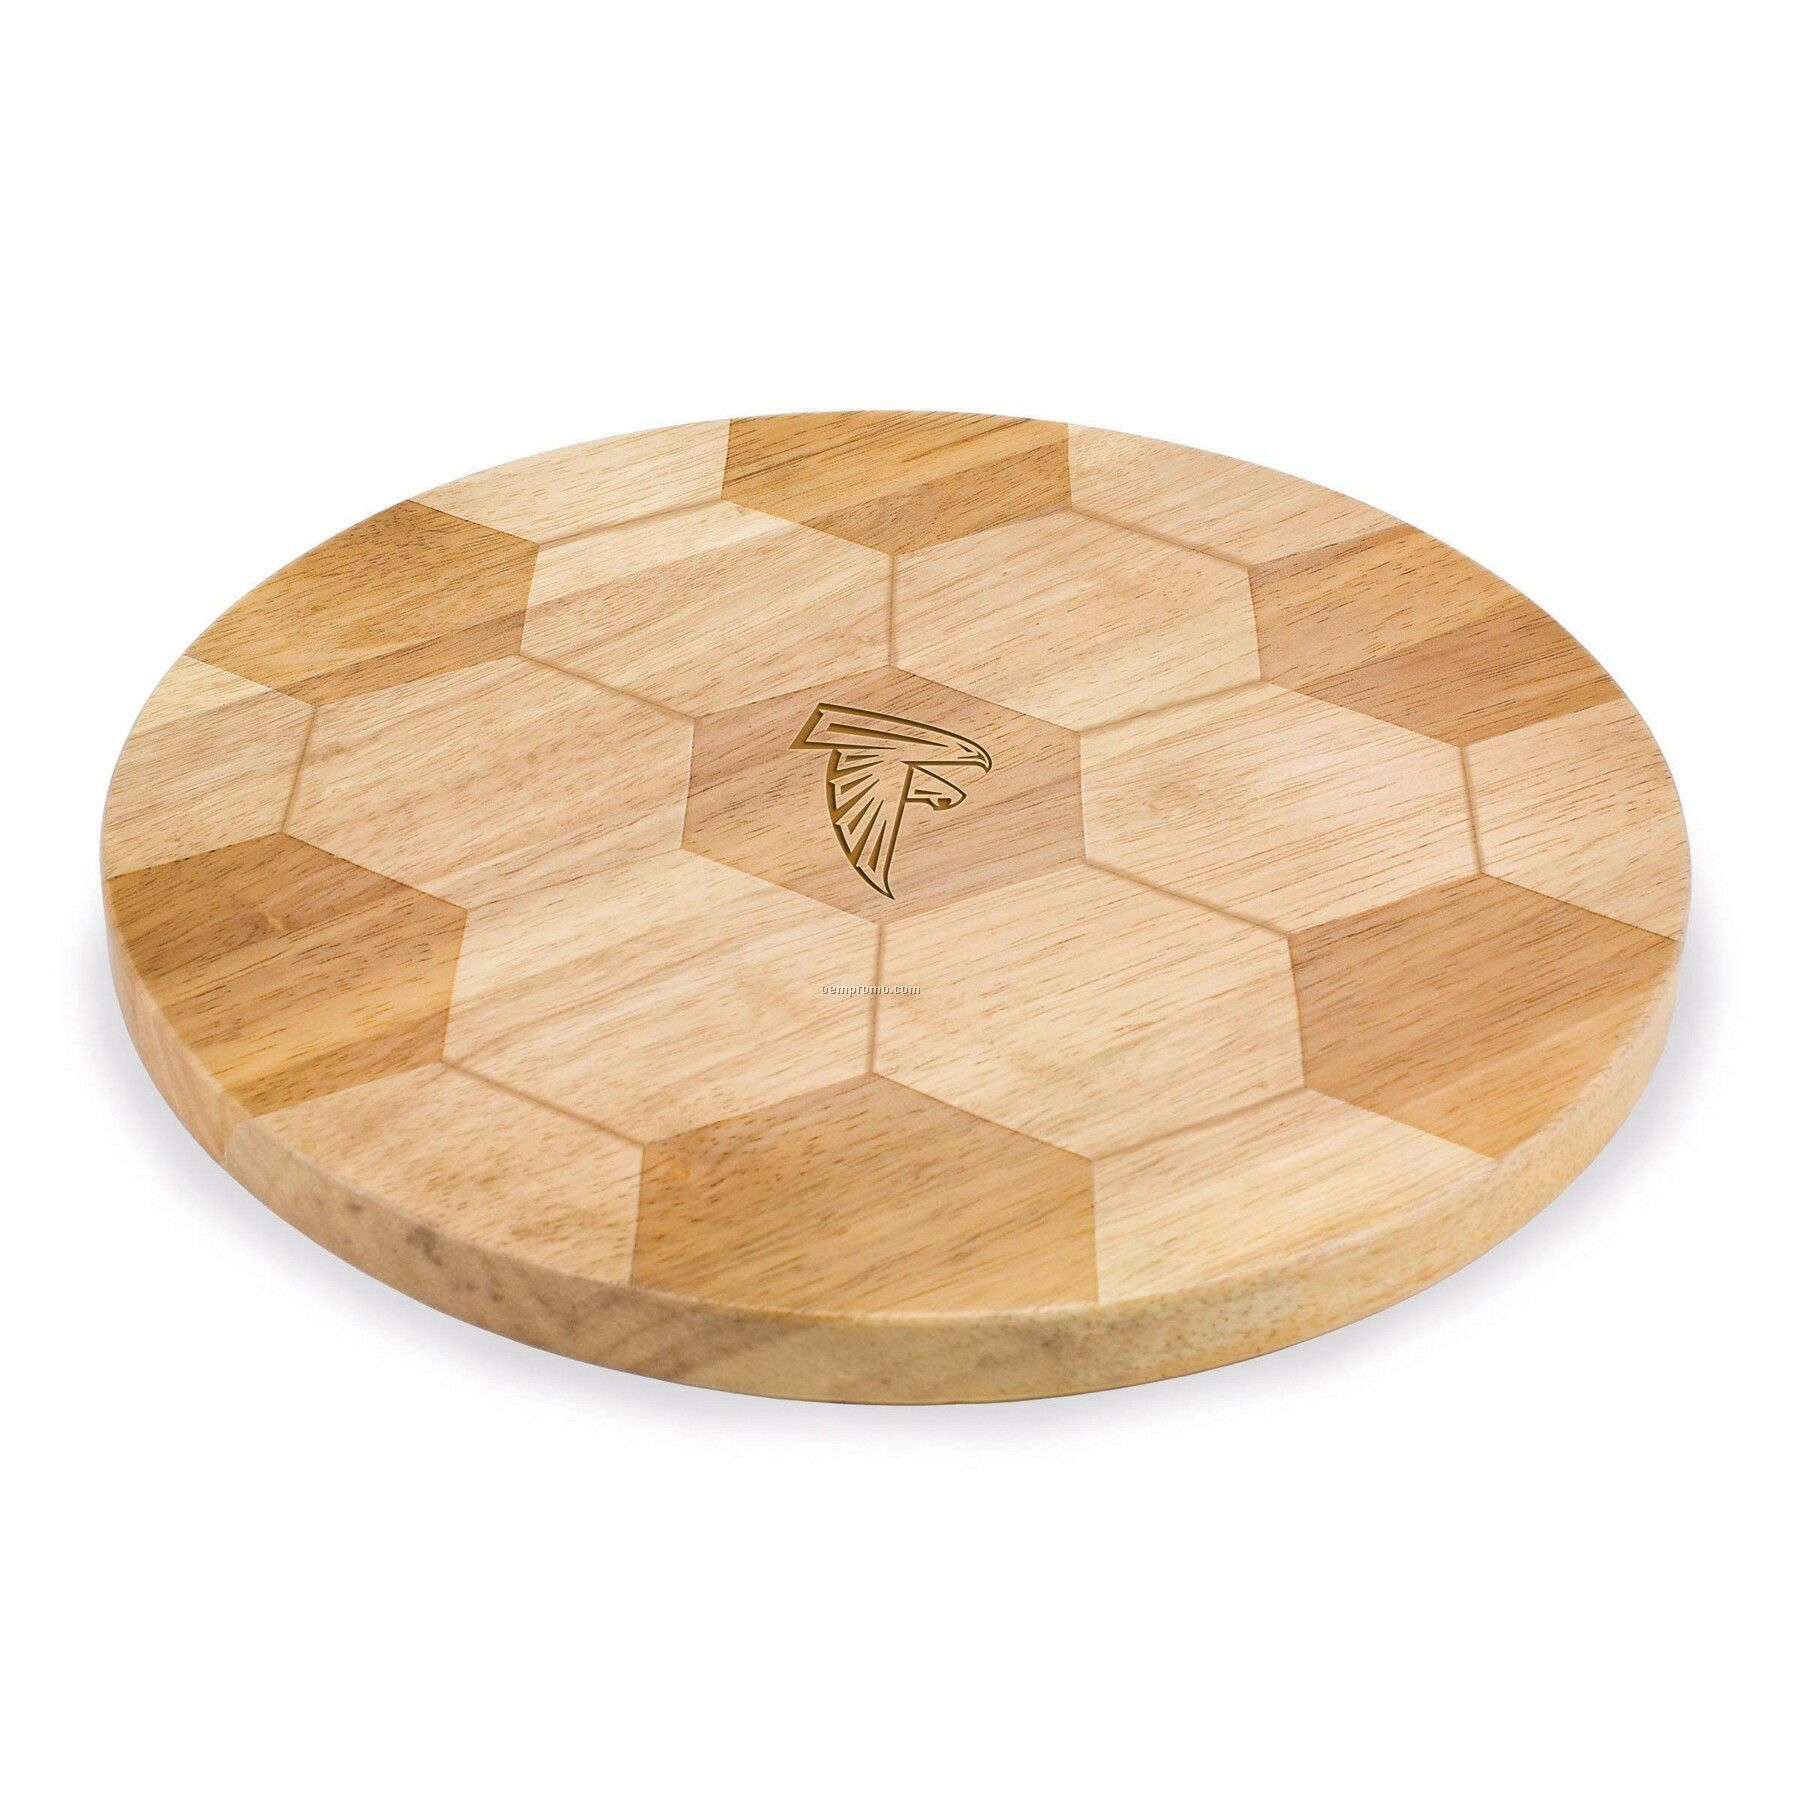 Goal Soccer Ball Shaped Wood Cutting Board / Serving Tray